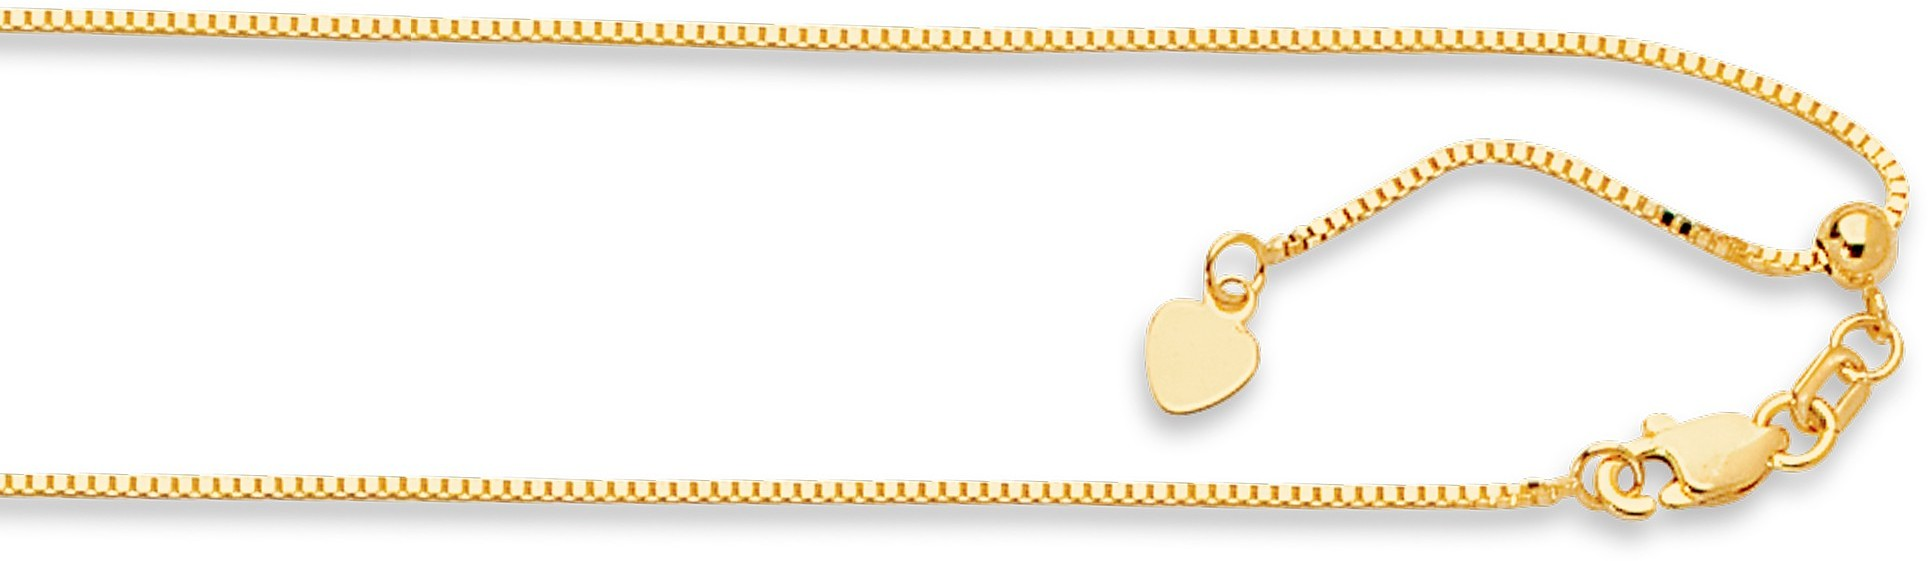 "22"" 14K Yellow Gold .85mm (0.03"") Polished Diamond Cut Adjustable Box Chain w/ Lobster Clasp"